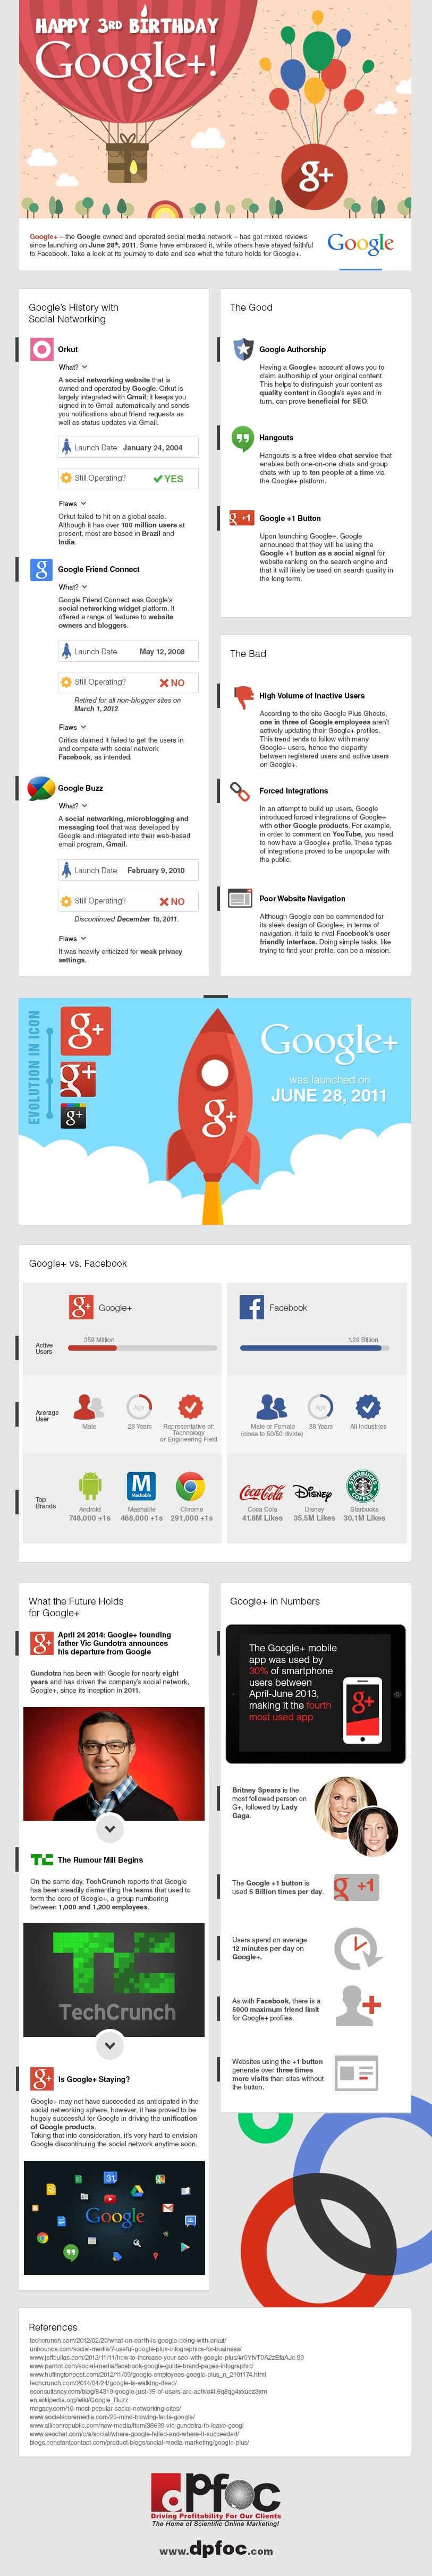 Google+ 2nd Most Popular Social Media Site